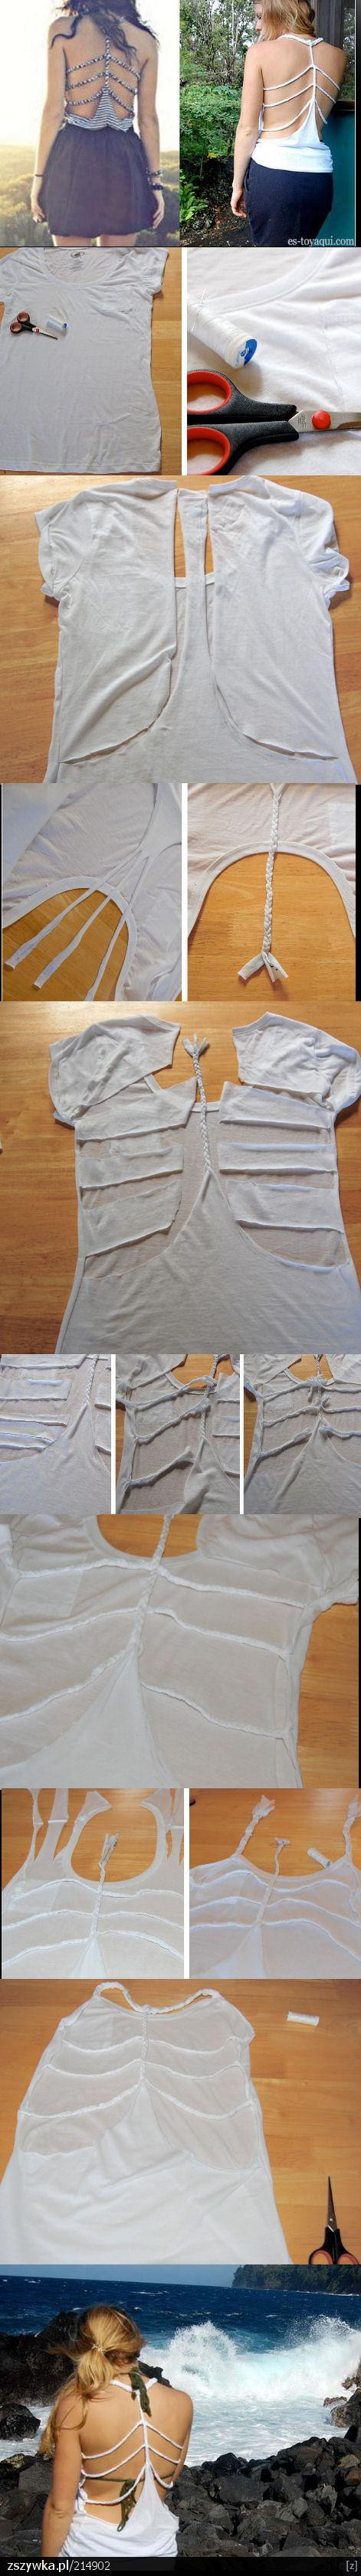 16 Best DIY Fashion Ideas Ever